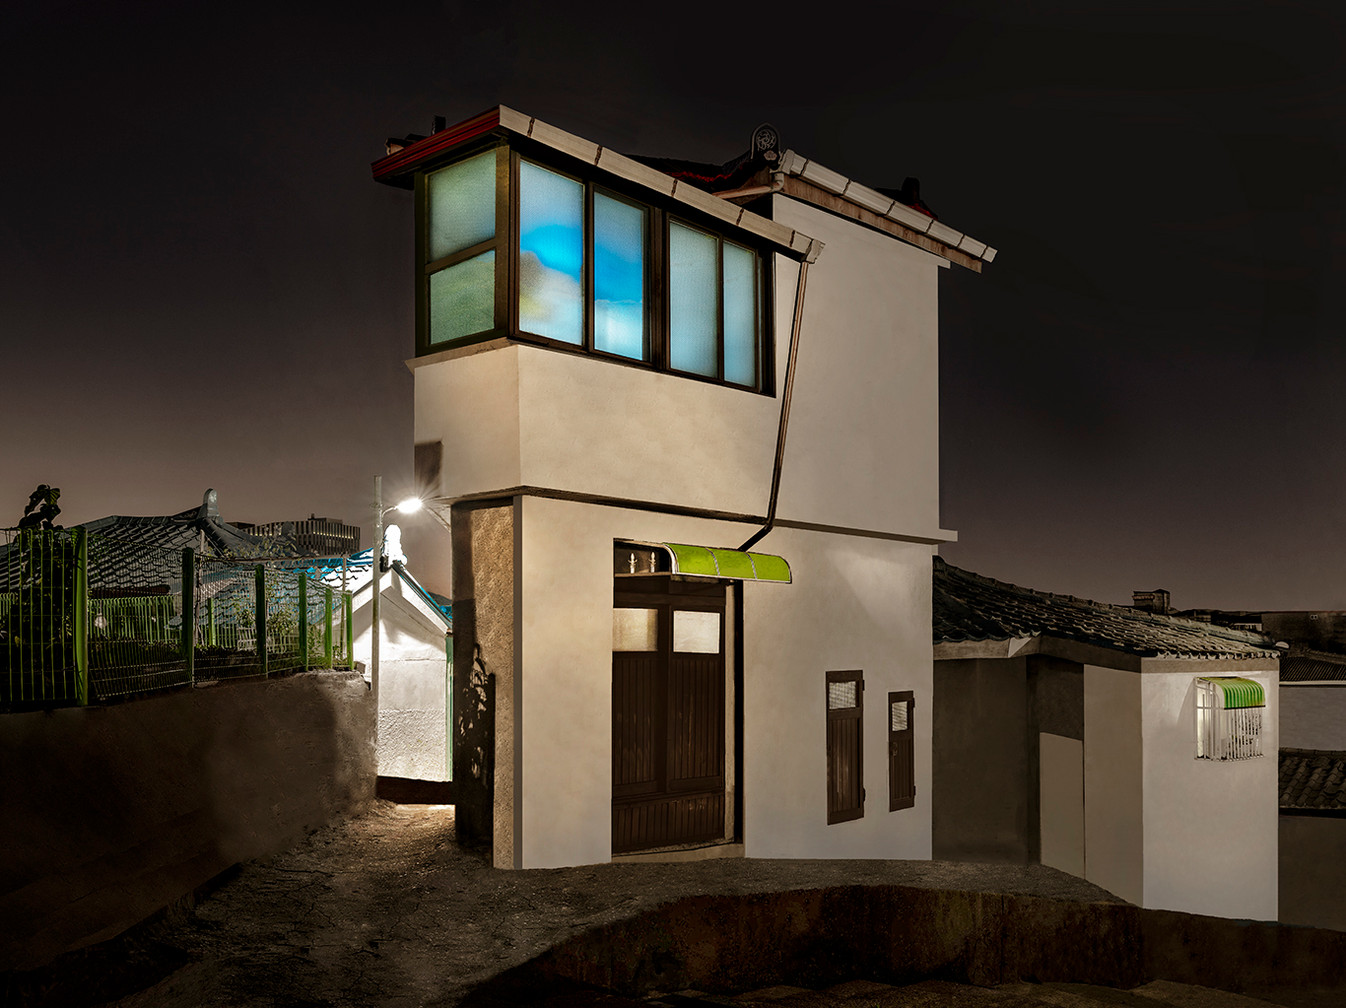 The Houses at Night #46